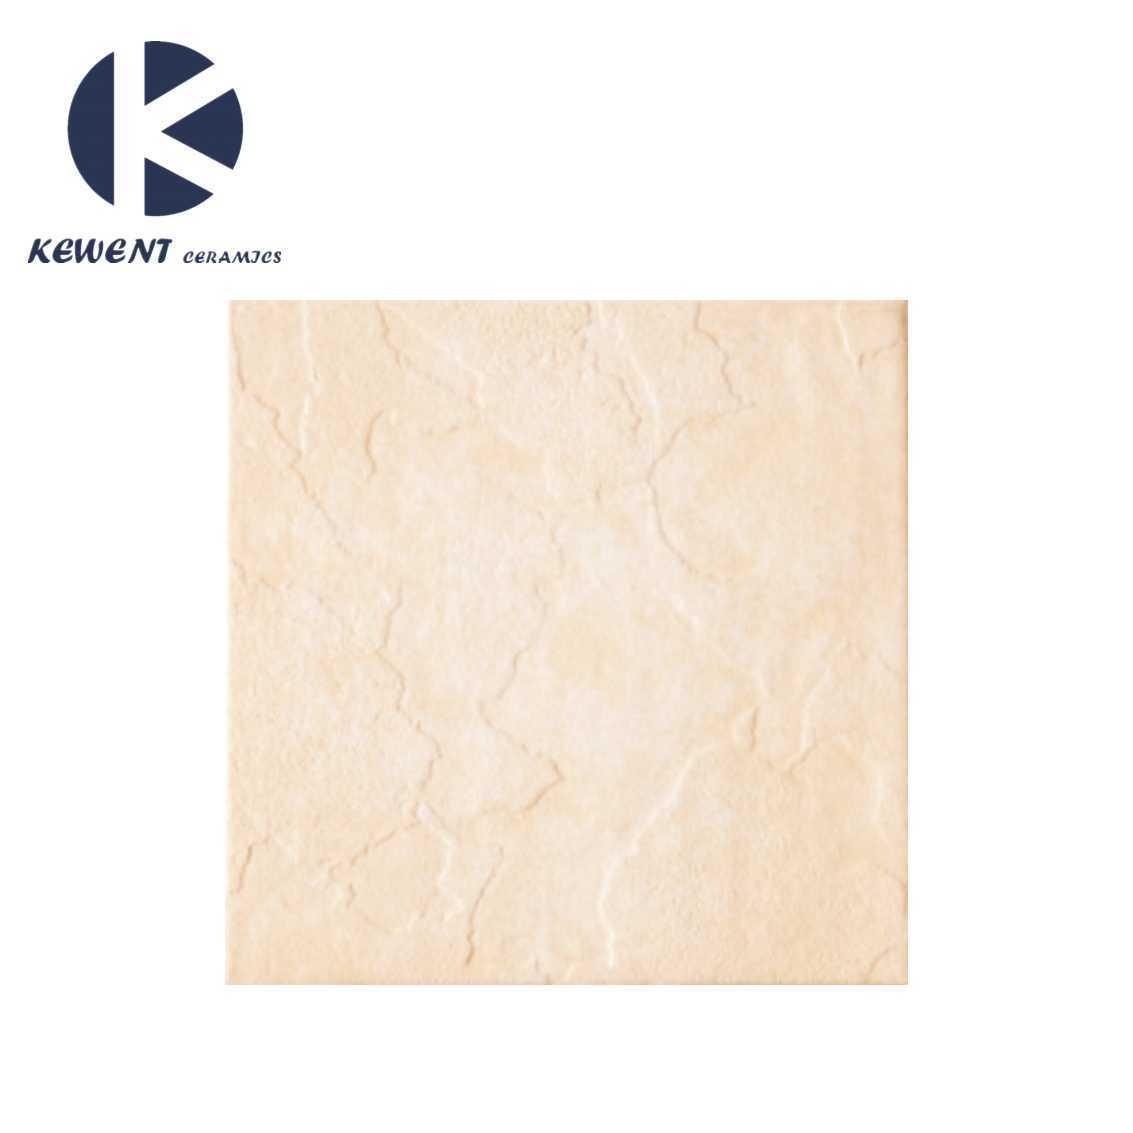 Glazed ceramic floor tiles image collections tile flooring china foshan building material 400x400 non slip glazed ceramic china foshan building material 400x400 non slip dailygadgetfo Image collections